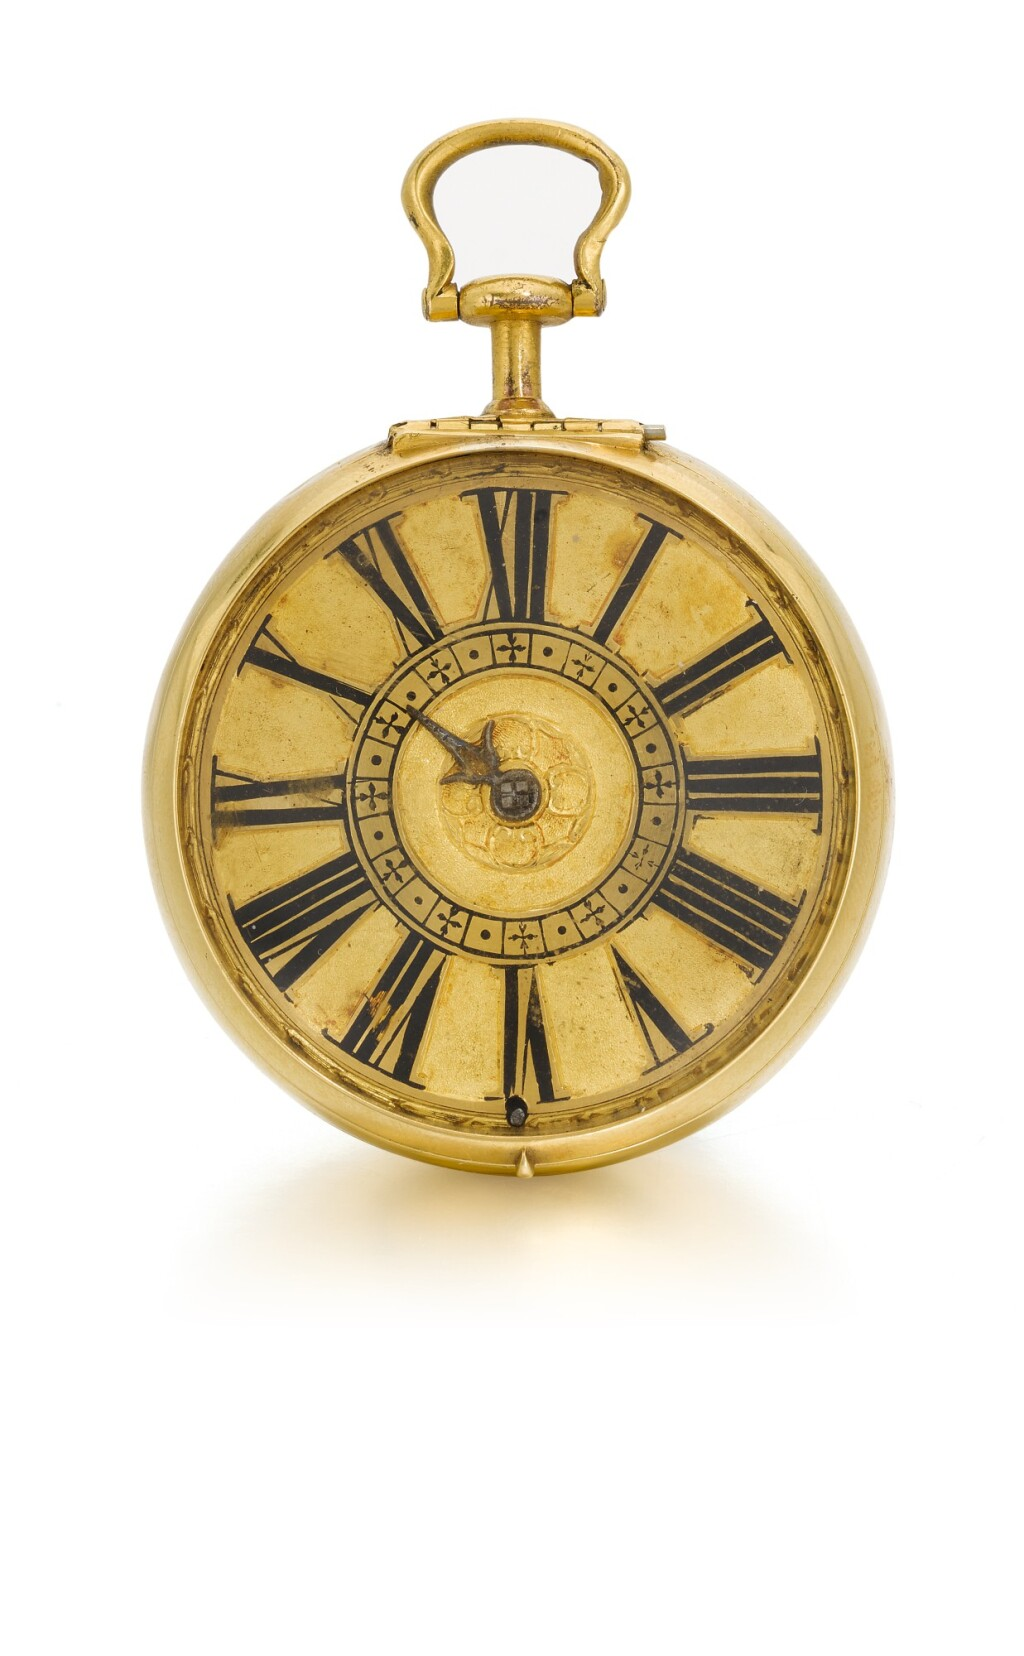 HENRICUS HARPUR, LONDINI | A GOLD PAIR CASED VERGE WATCH WITH LATER FILIGREE OUTER